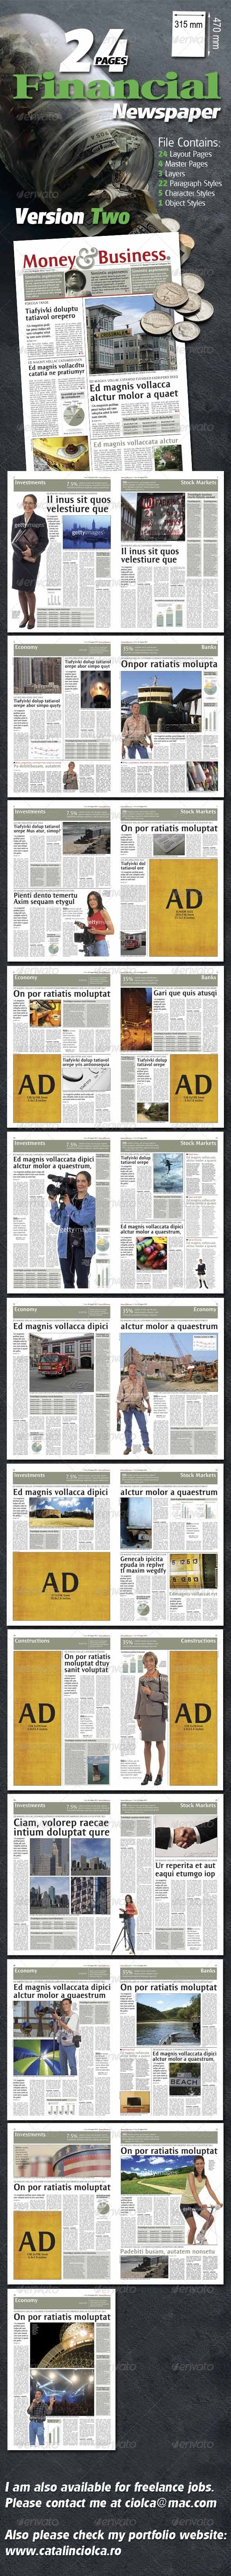 GraphicRiver 24 Pages Financial Newspaper Version Two 1023729